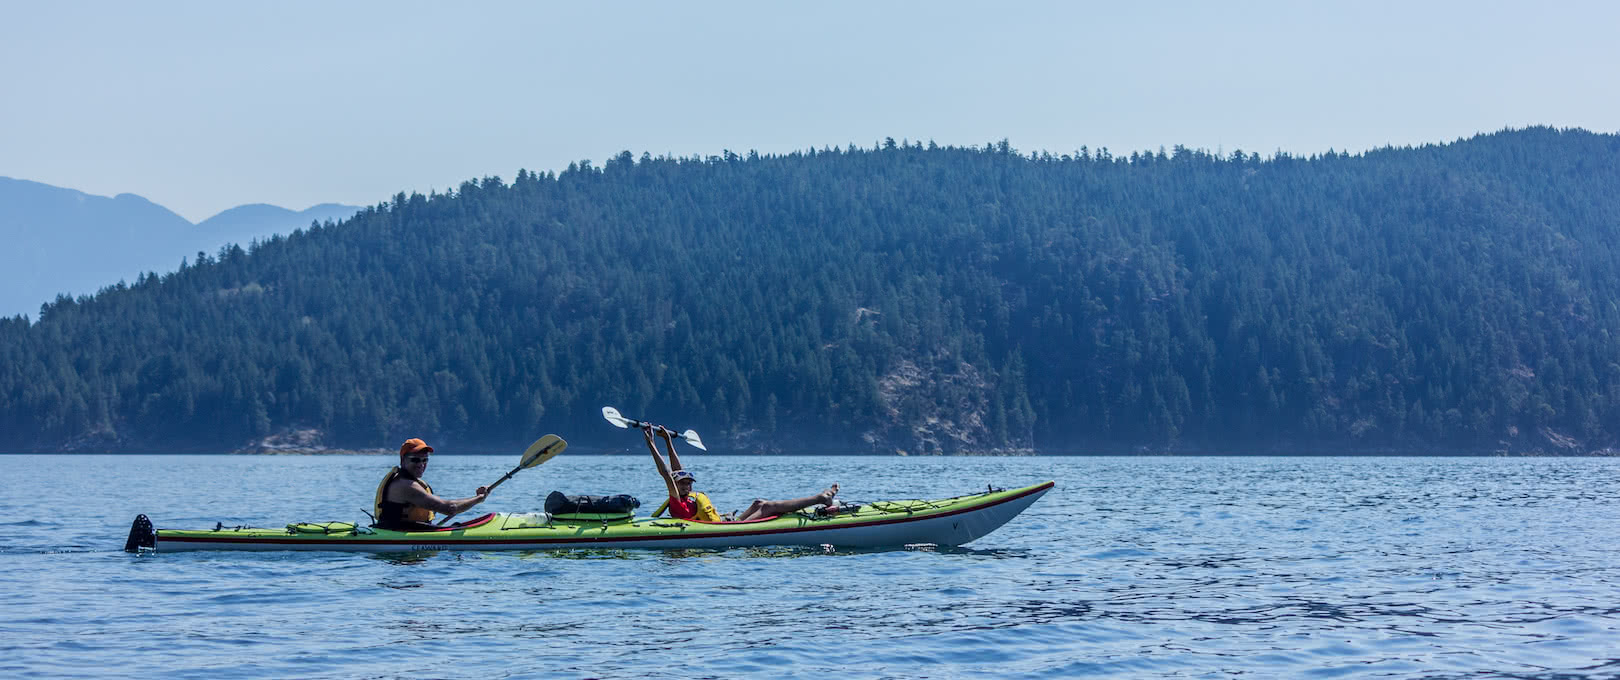 A father and son kayaking on a guided package in Desolation Sound